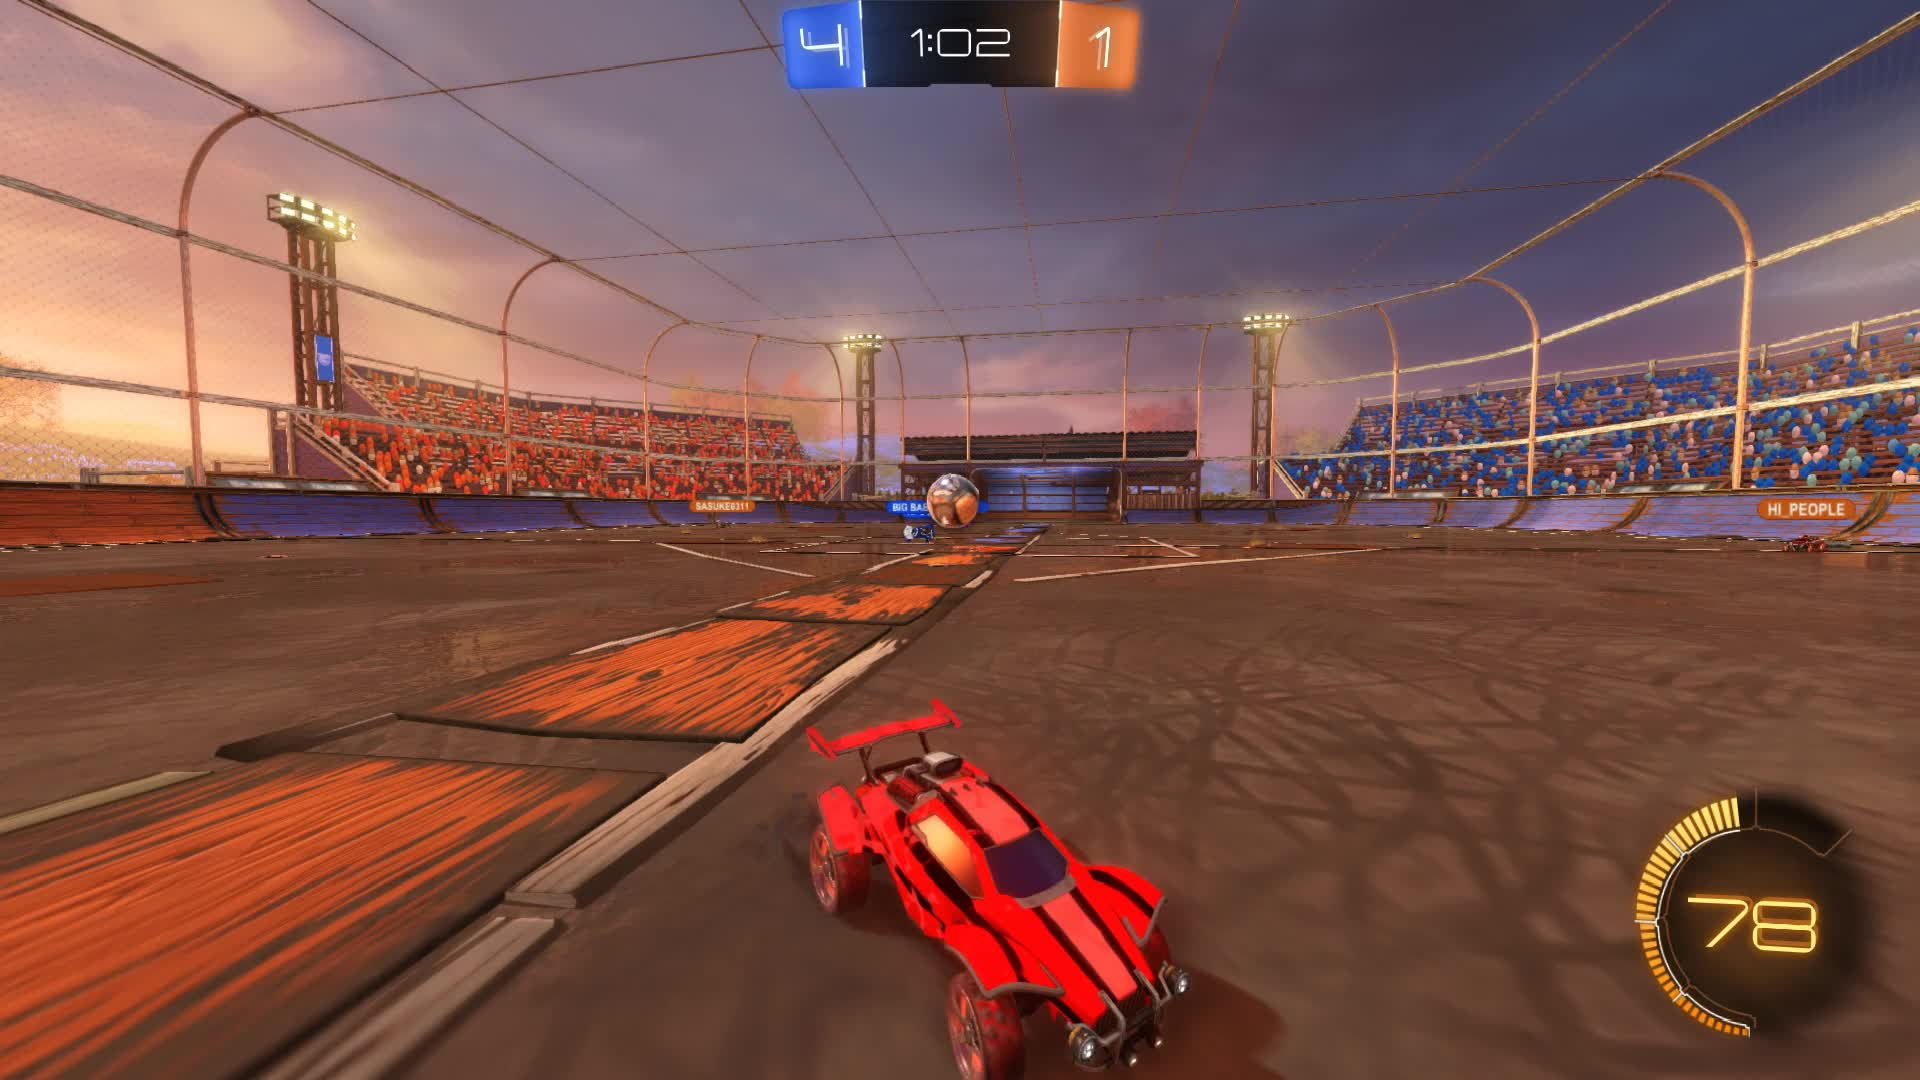 Gif Your Game, GifYourGame, Rocket League, RocketLeague, Save, Vector, Save 2: Vector GIFs